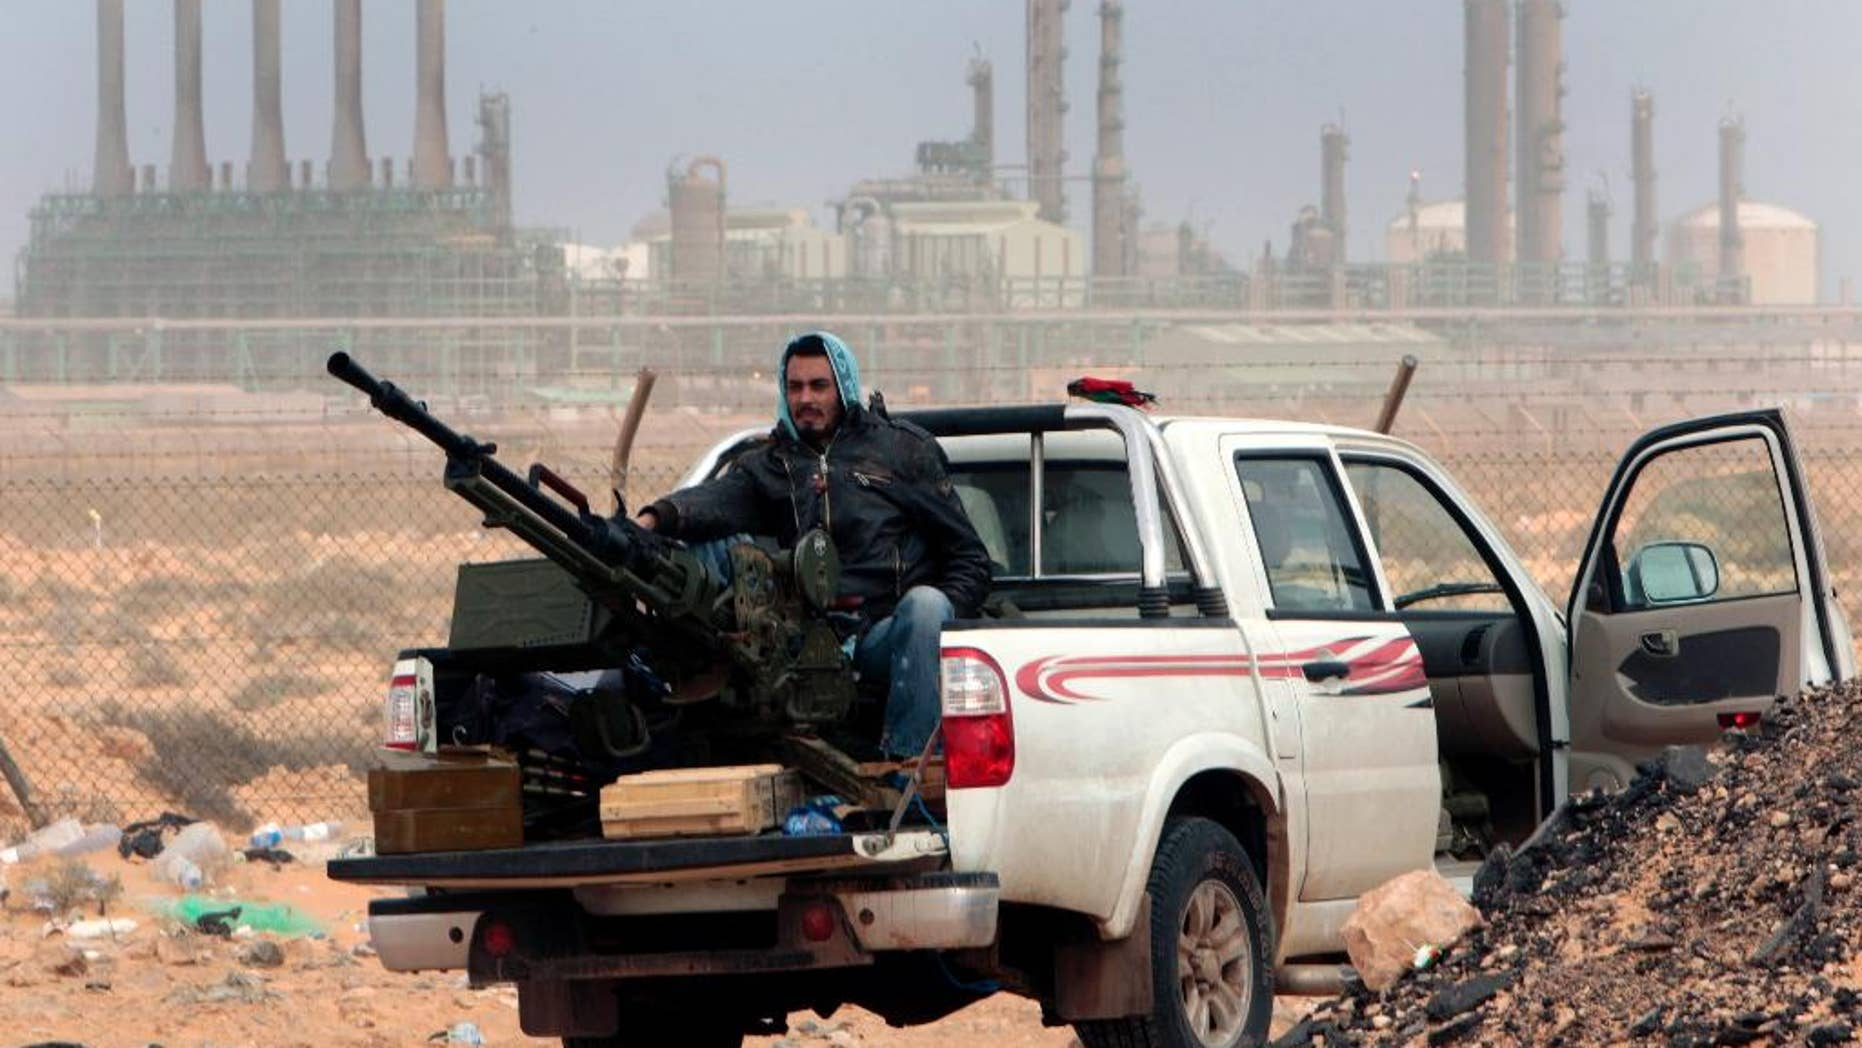 FILE - In this March 5, 2011 file photo, an anti-government rebel sits with an anti-aircraft weapon in front an oil refinery, after the capture of the oil town of Ras Lanouf, eastern Libya. The official Libyan news agency said Sunday, April 6, 2014 that the country's main militia in the east has agreed to hand back control of four oil terminals it captured and shut down last summer in its demand for a share in oil revenues. The shutdown has cost Libya millions of dollars. (AP Photo/Hussein Malla, File)